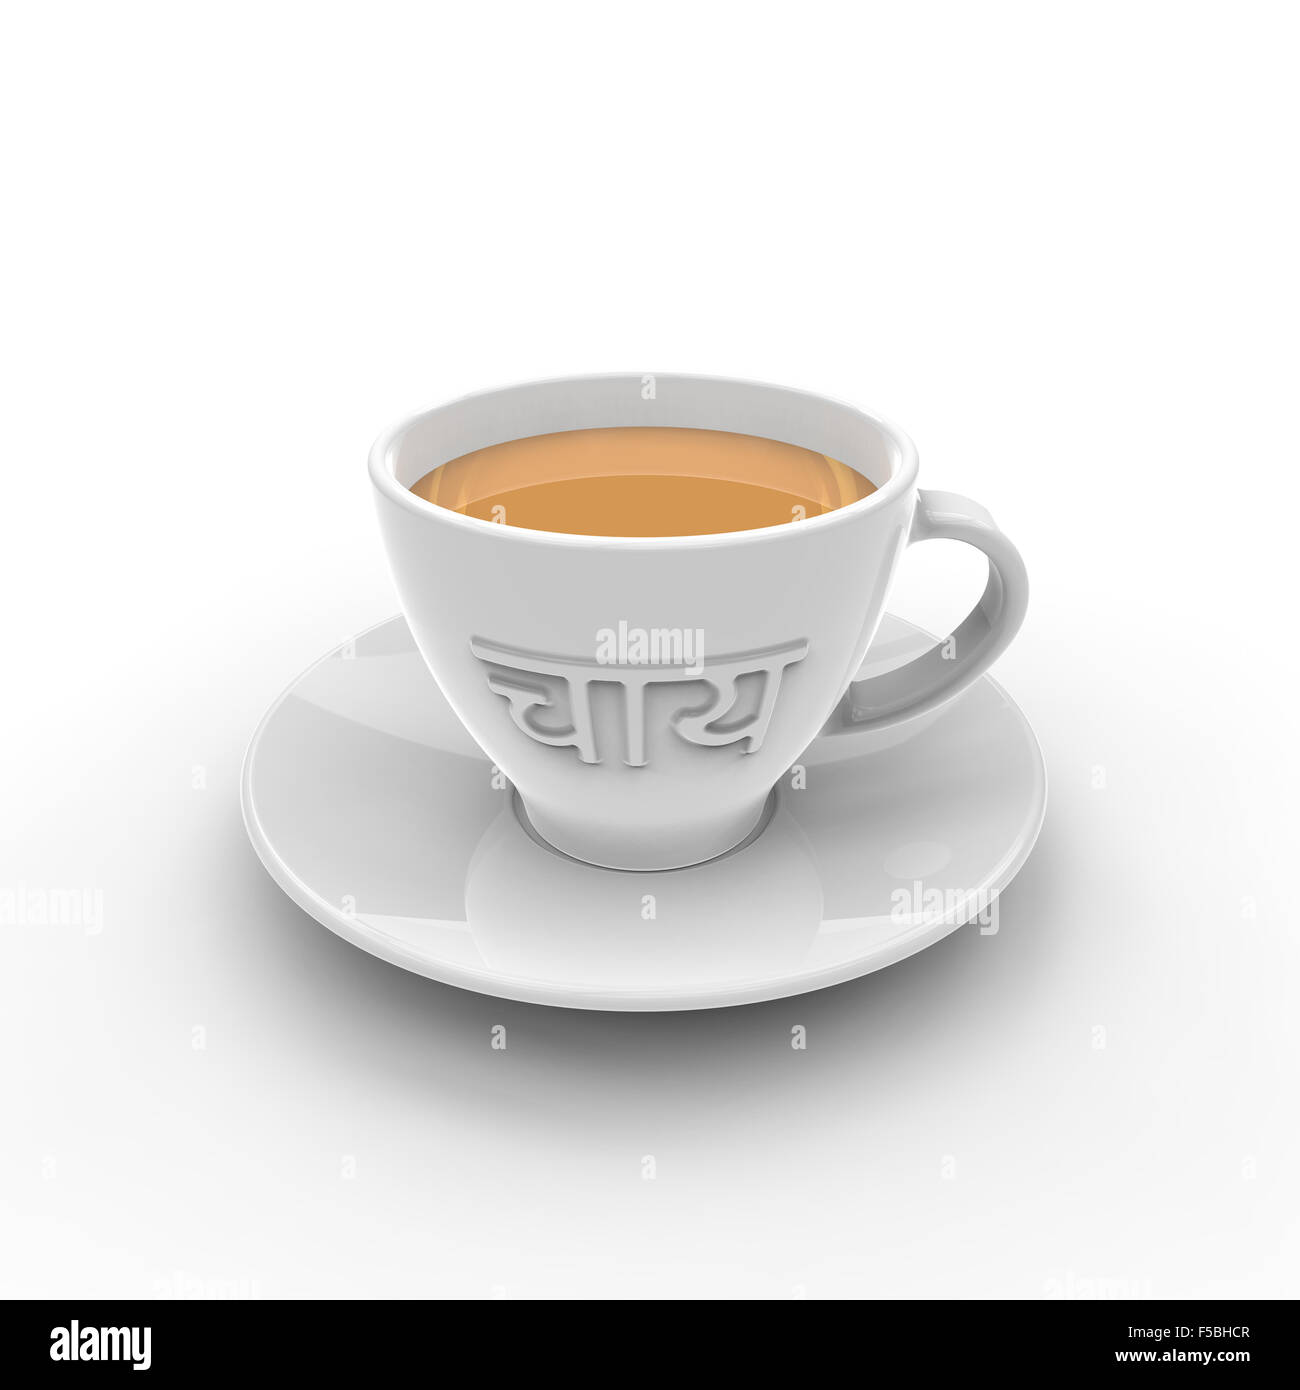 White Cup And Saucer With Tea Written In Hindi On The Side And Stock Photo Alamy